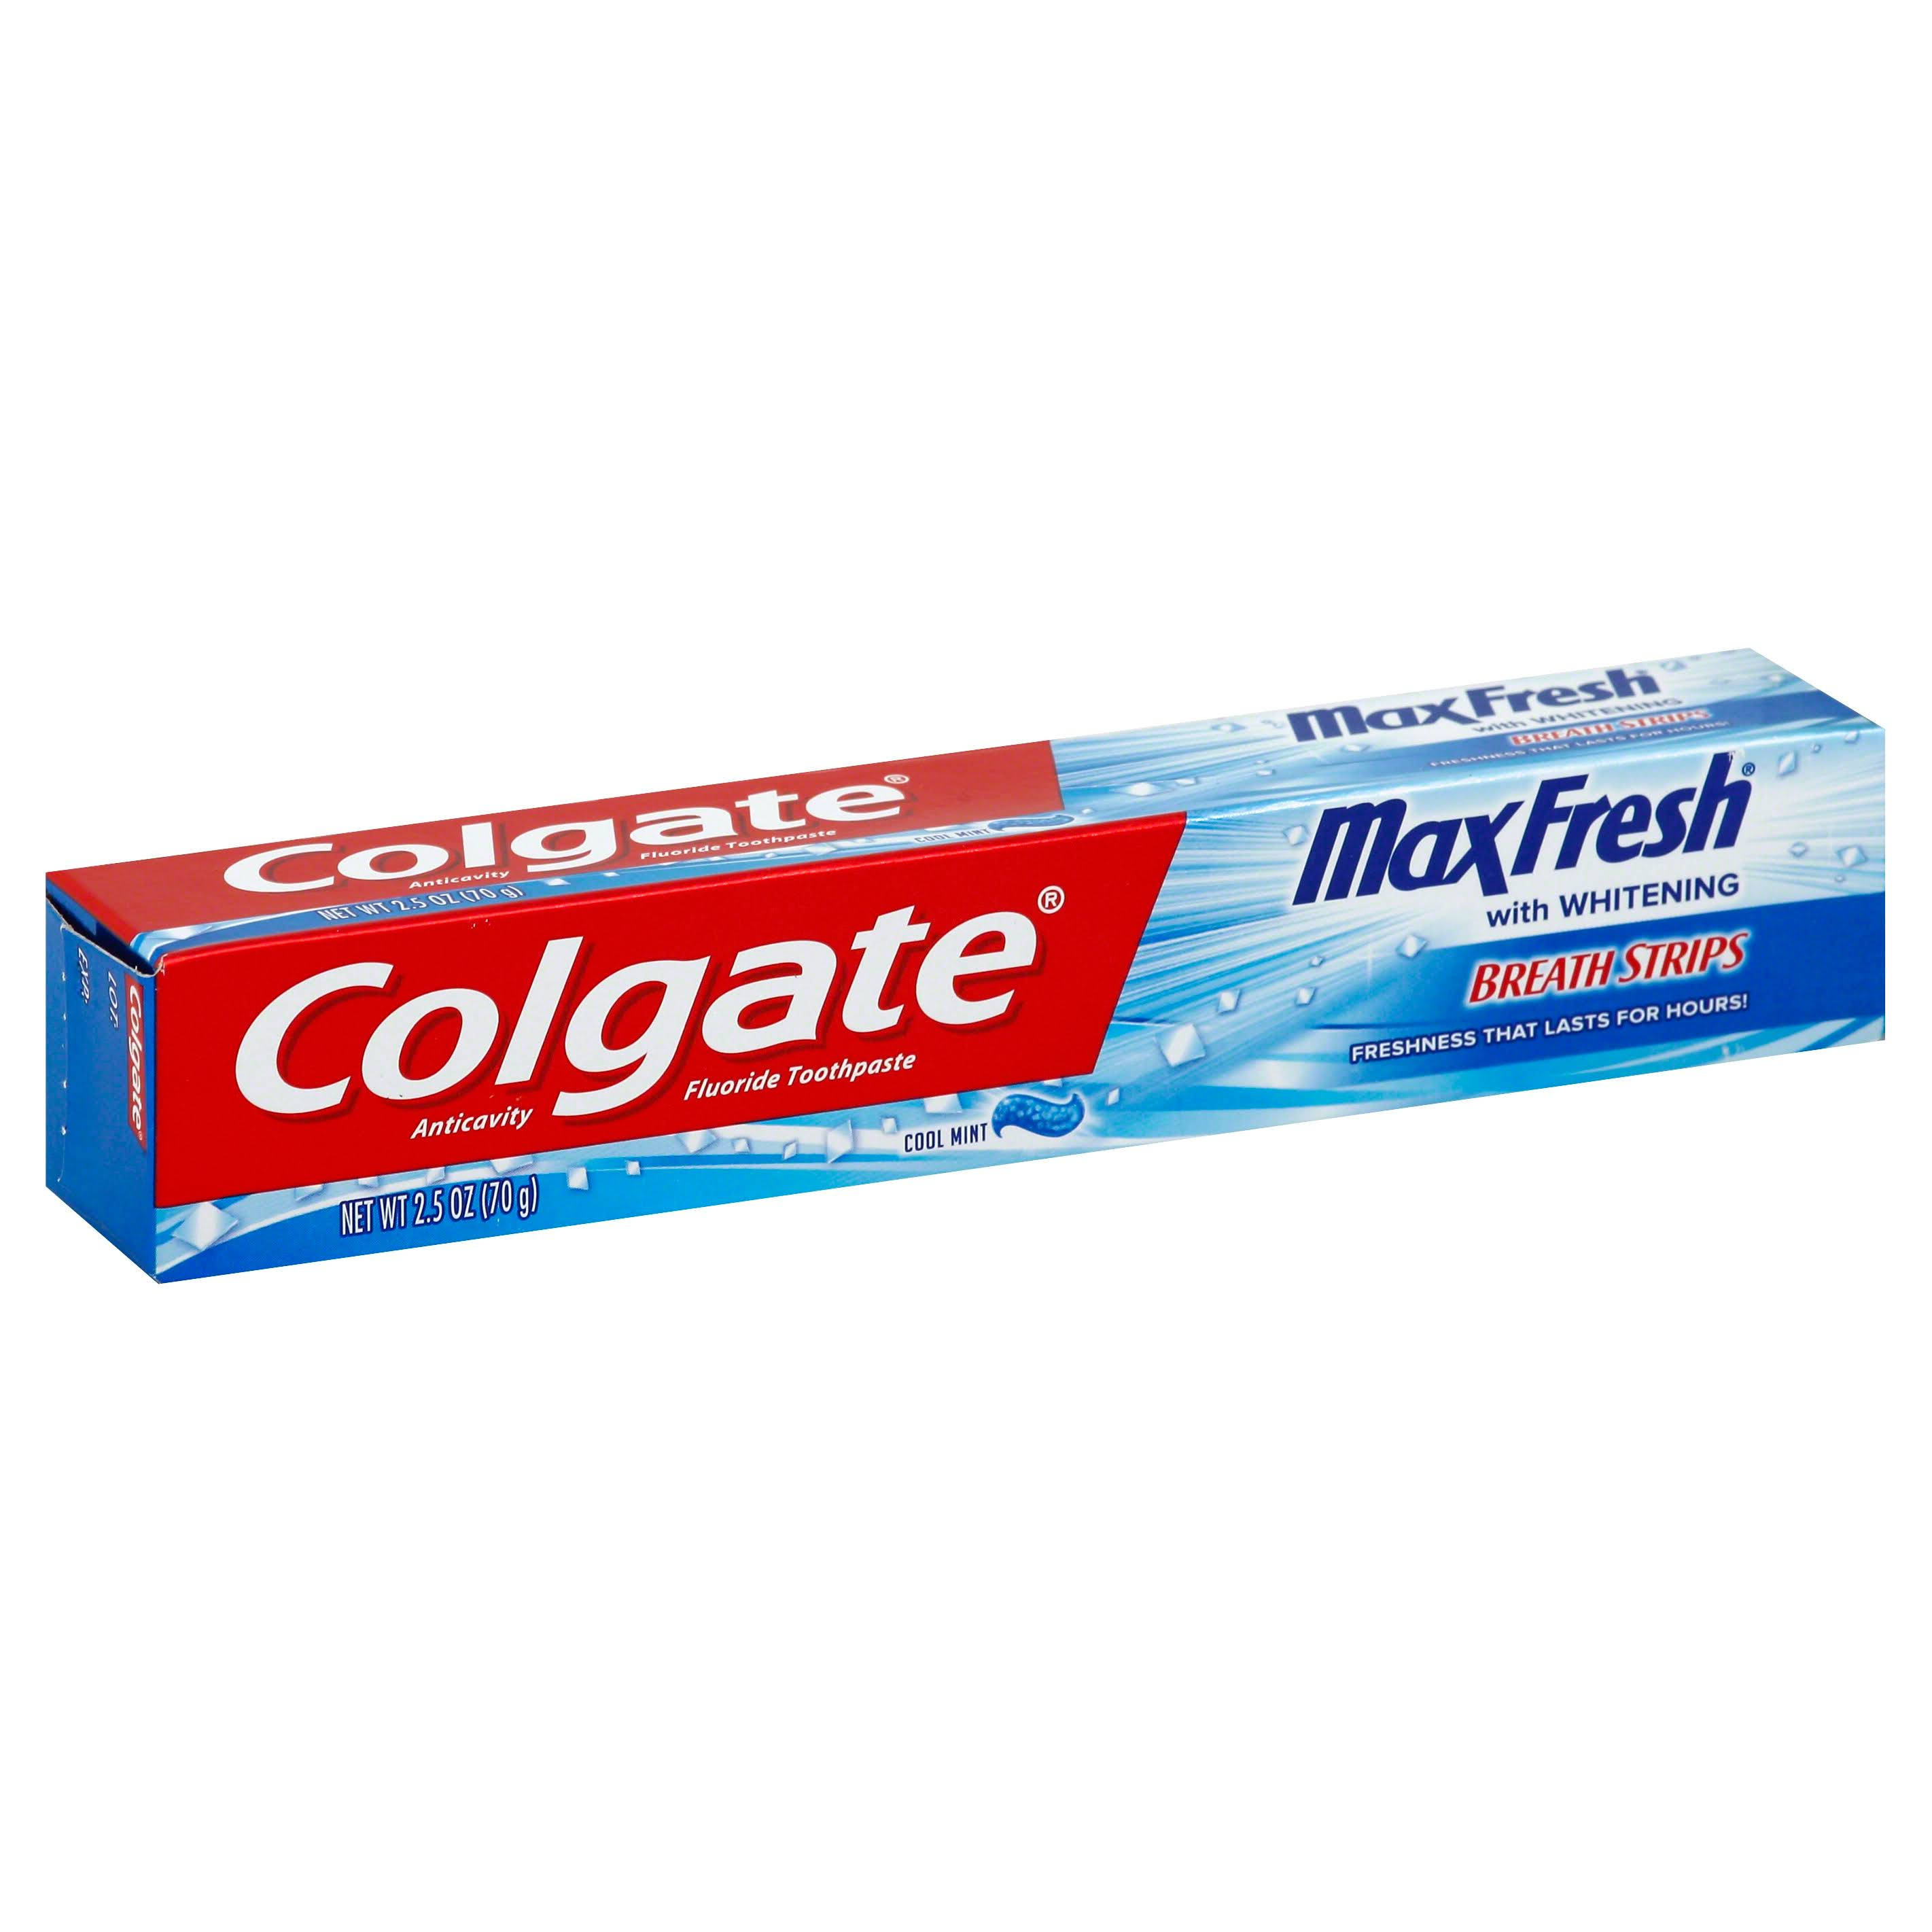 Colgate Maxfresh With Whitening Breath Strips Toothpaste - Cool Mint, 70g